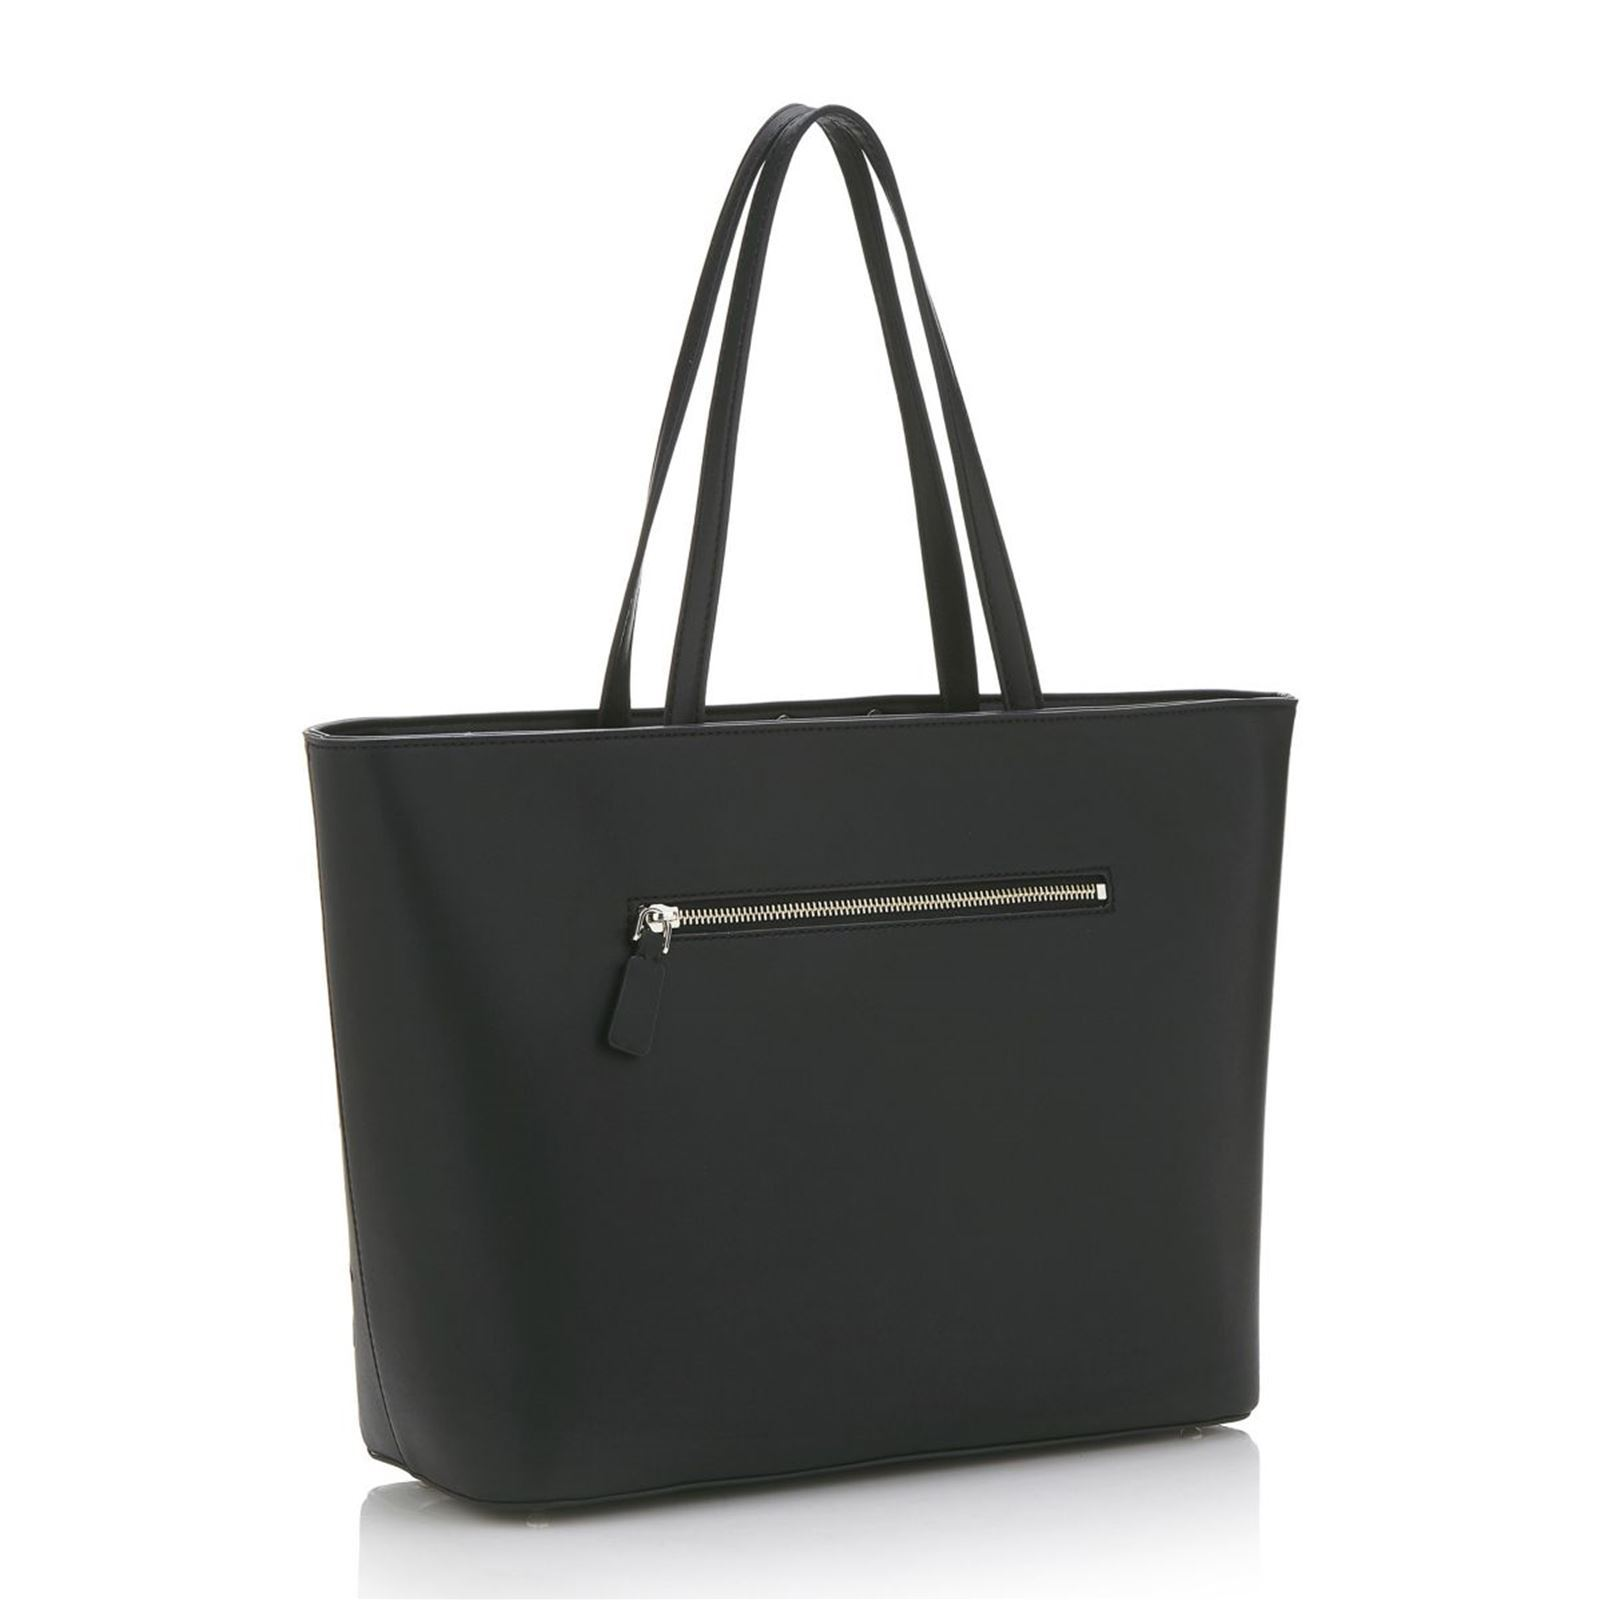 Guess Britta - Sac cabas avec broderies florales - noir   BrandAlley 586151aba071